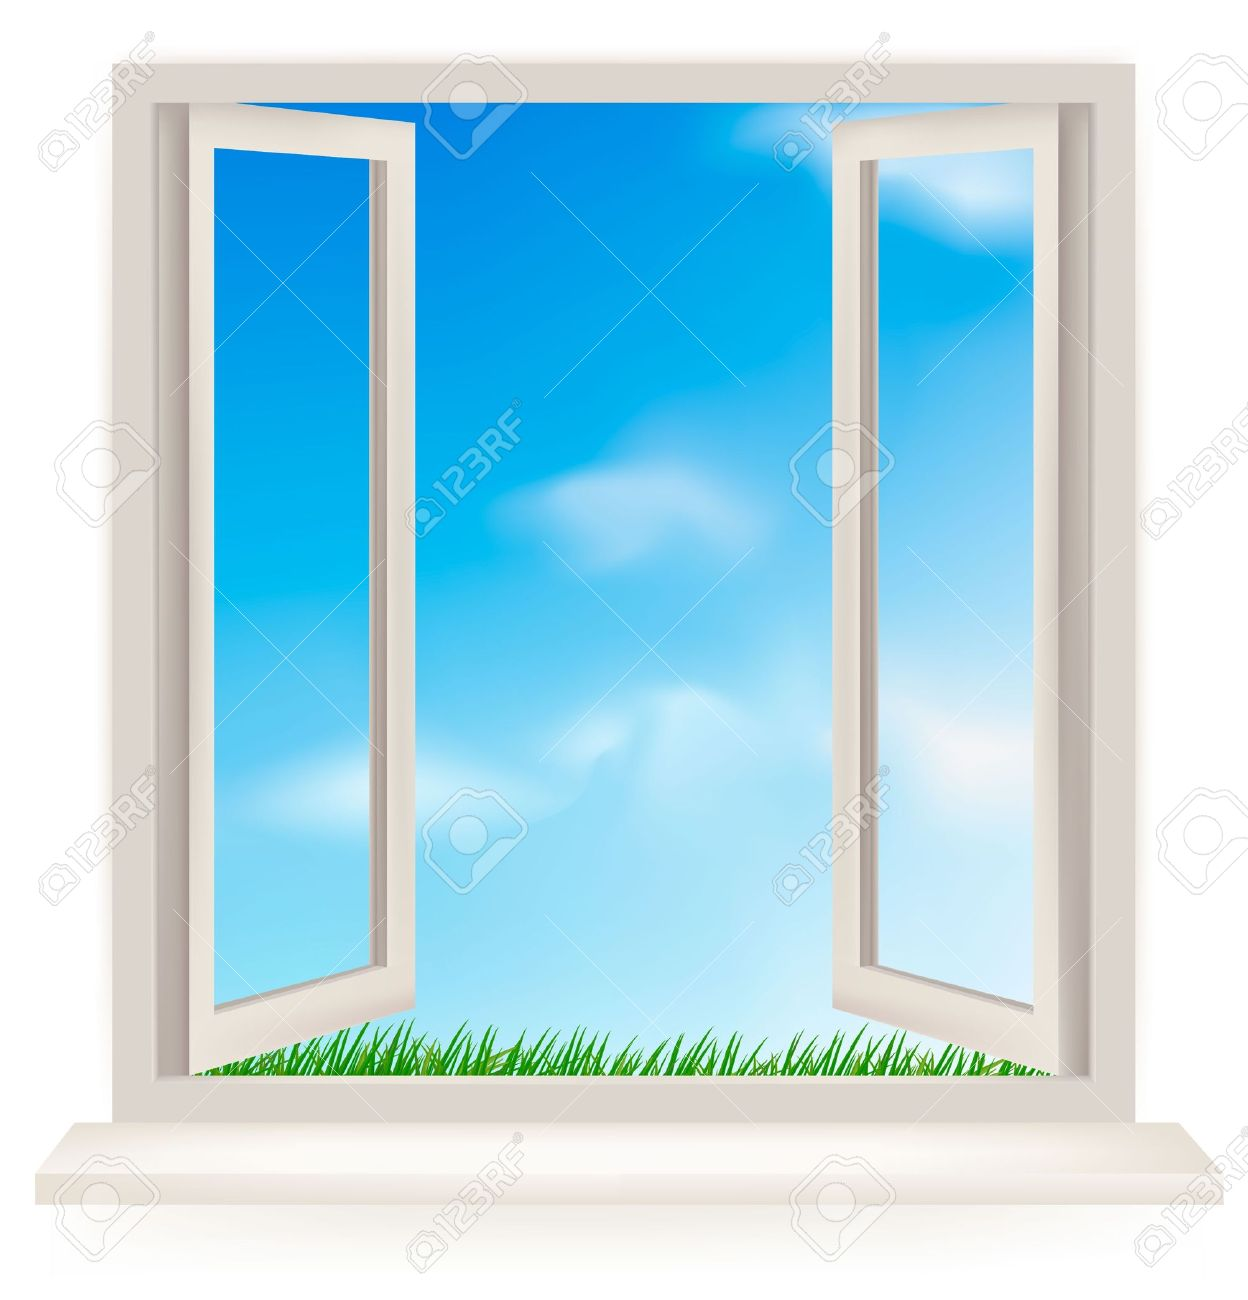 Window clip art images free clipart images